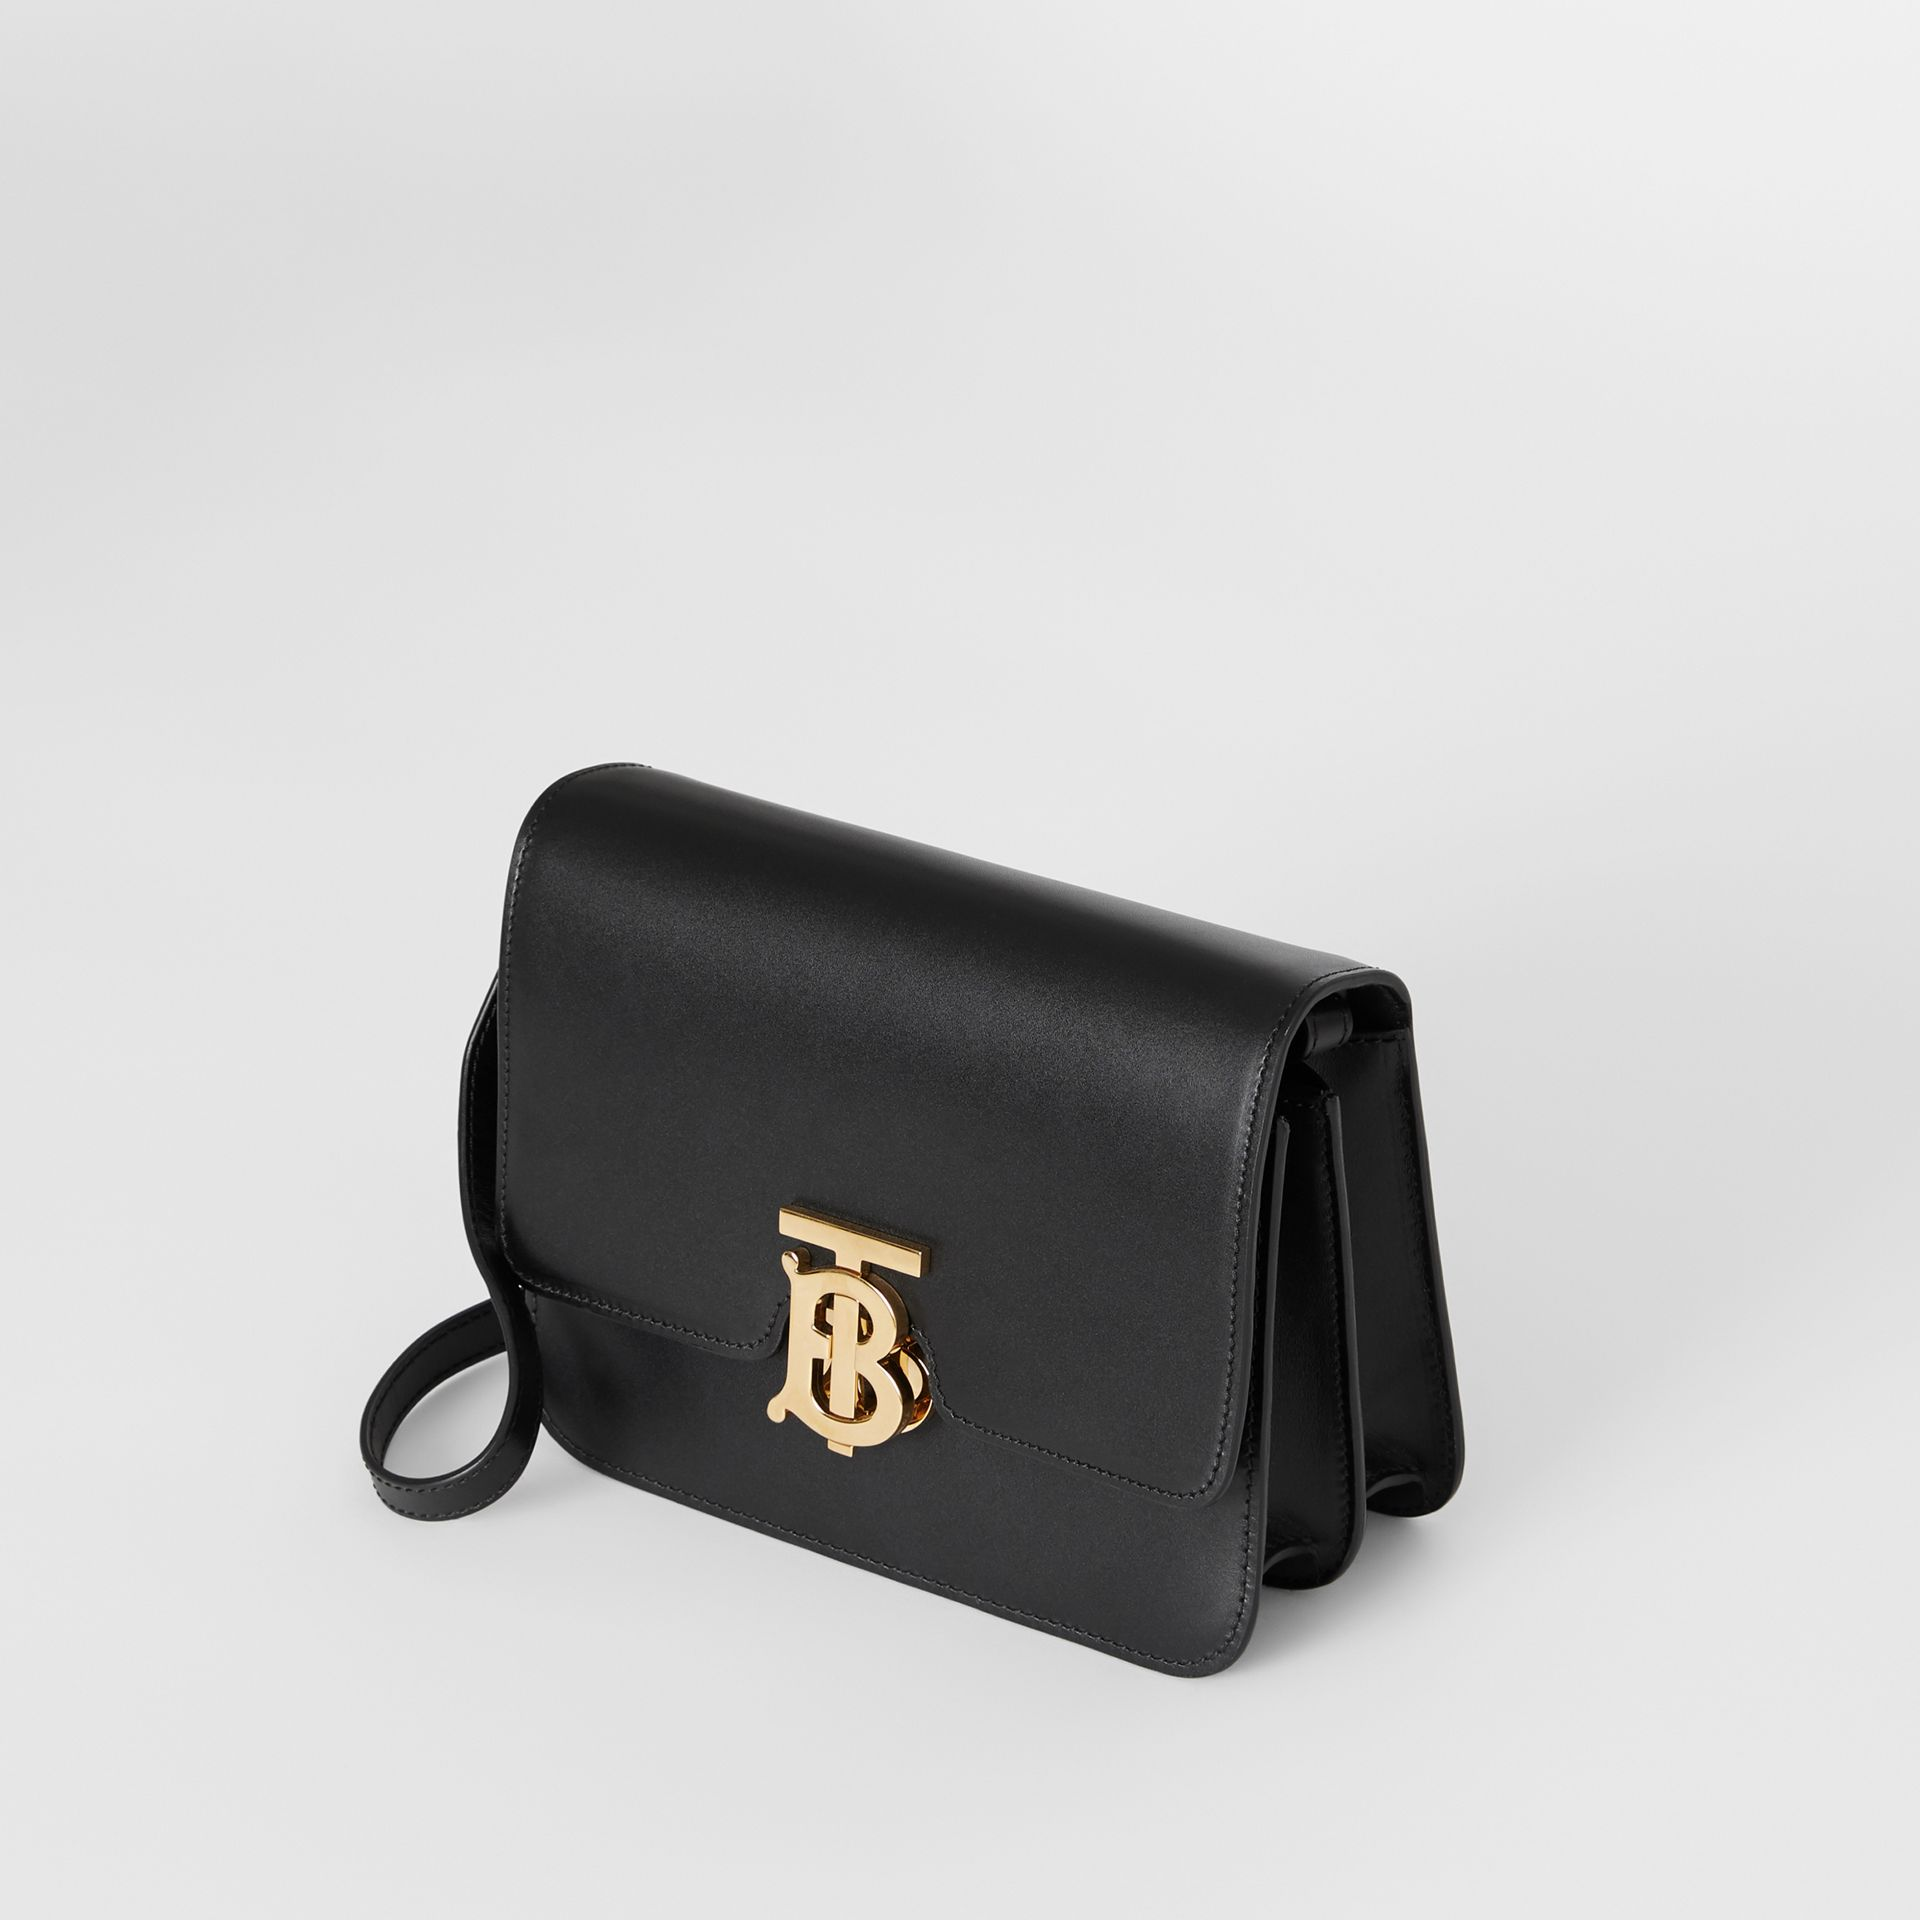 Small Leather TB Bag in Black - Women | Burberry - gallery image 4